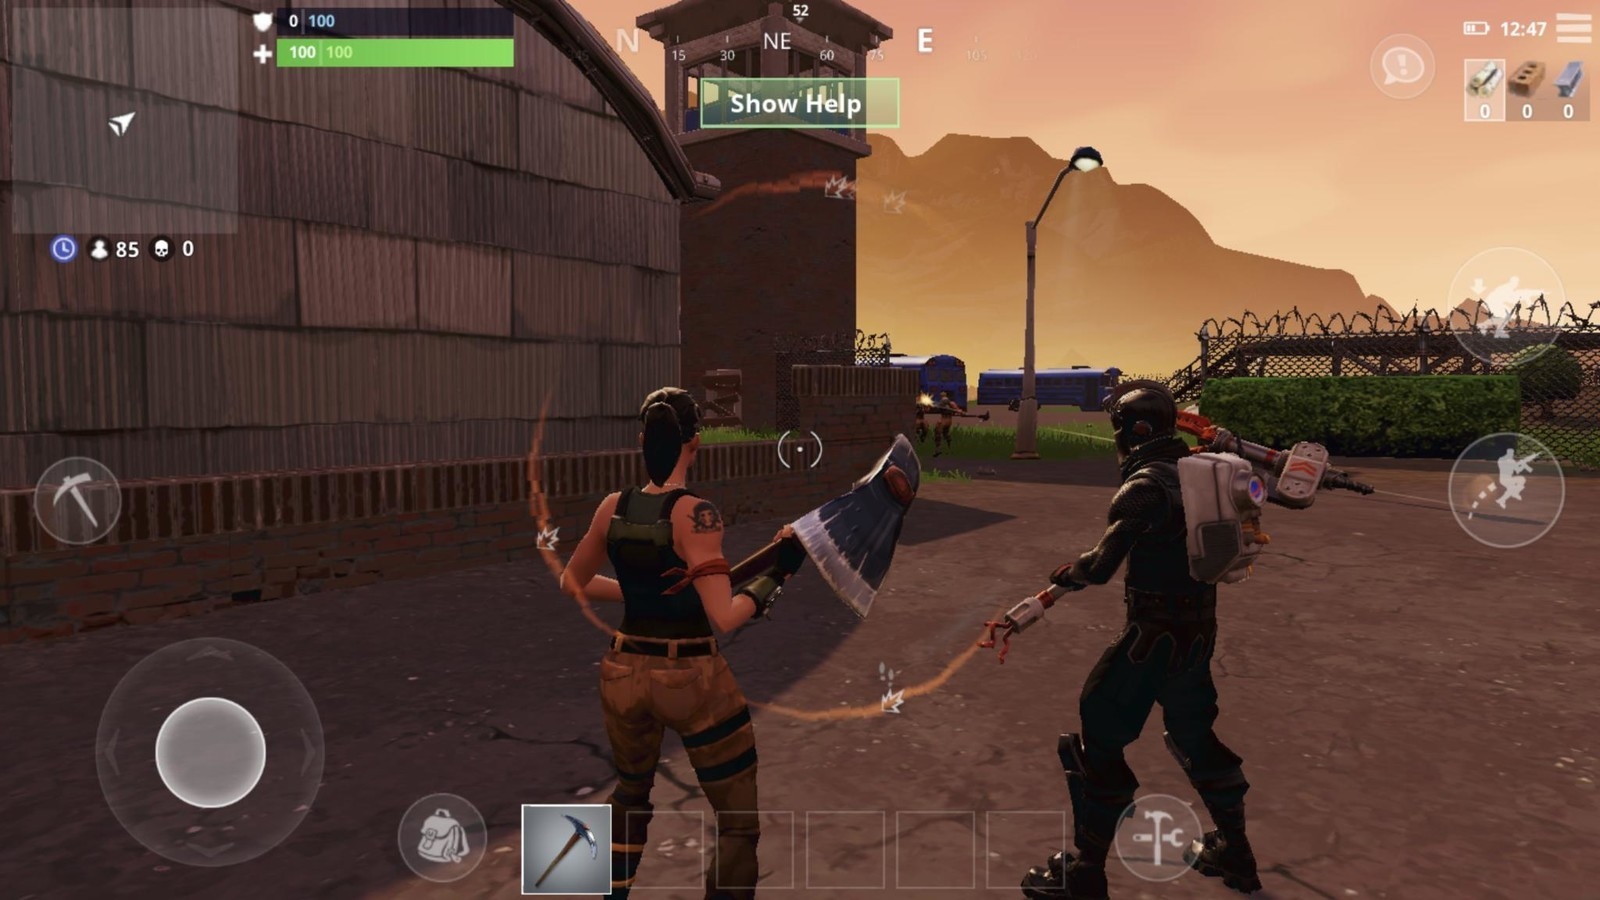 Fortnite Sound Not Working Pc hands-on with fortnite for iphone and ipad | imore